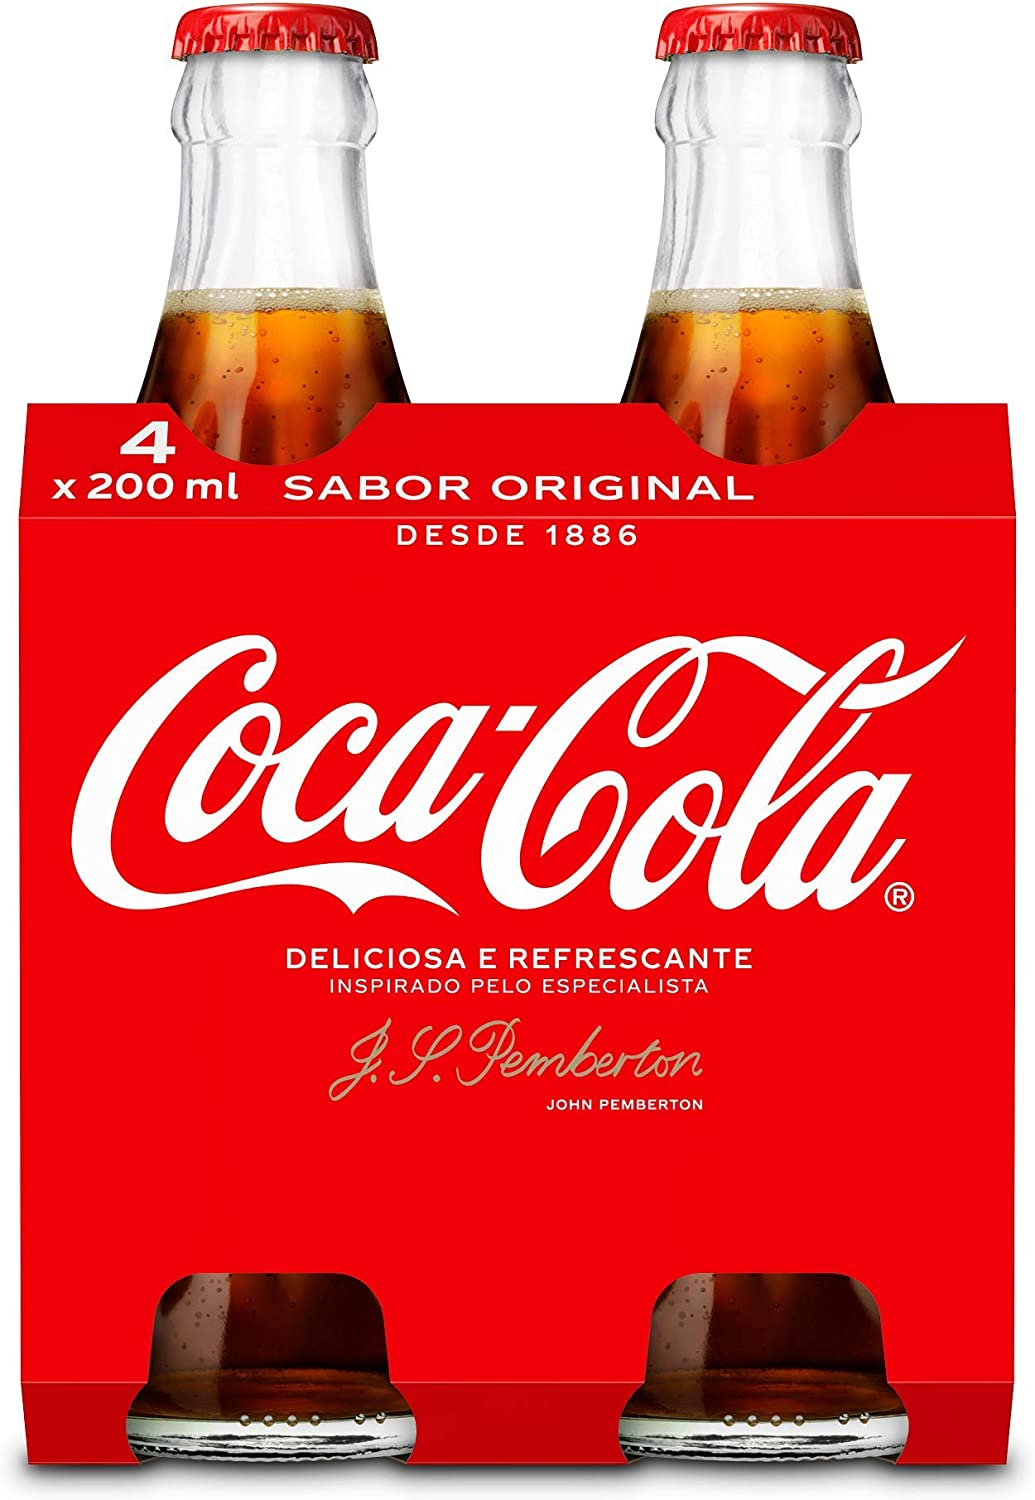 Coca-Cola - Regular, Botella de cristal, 4 x 200 ml